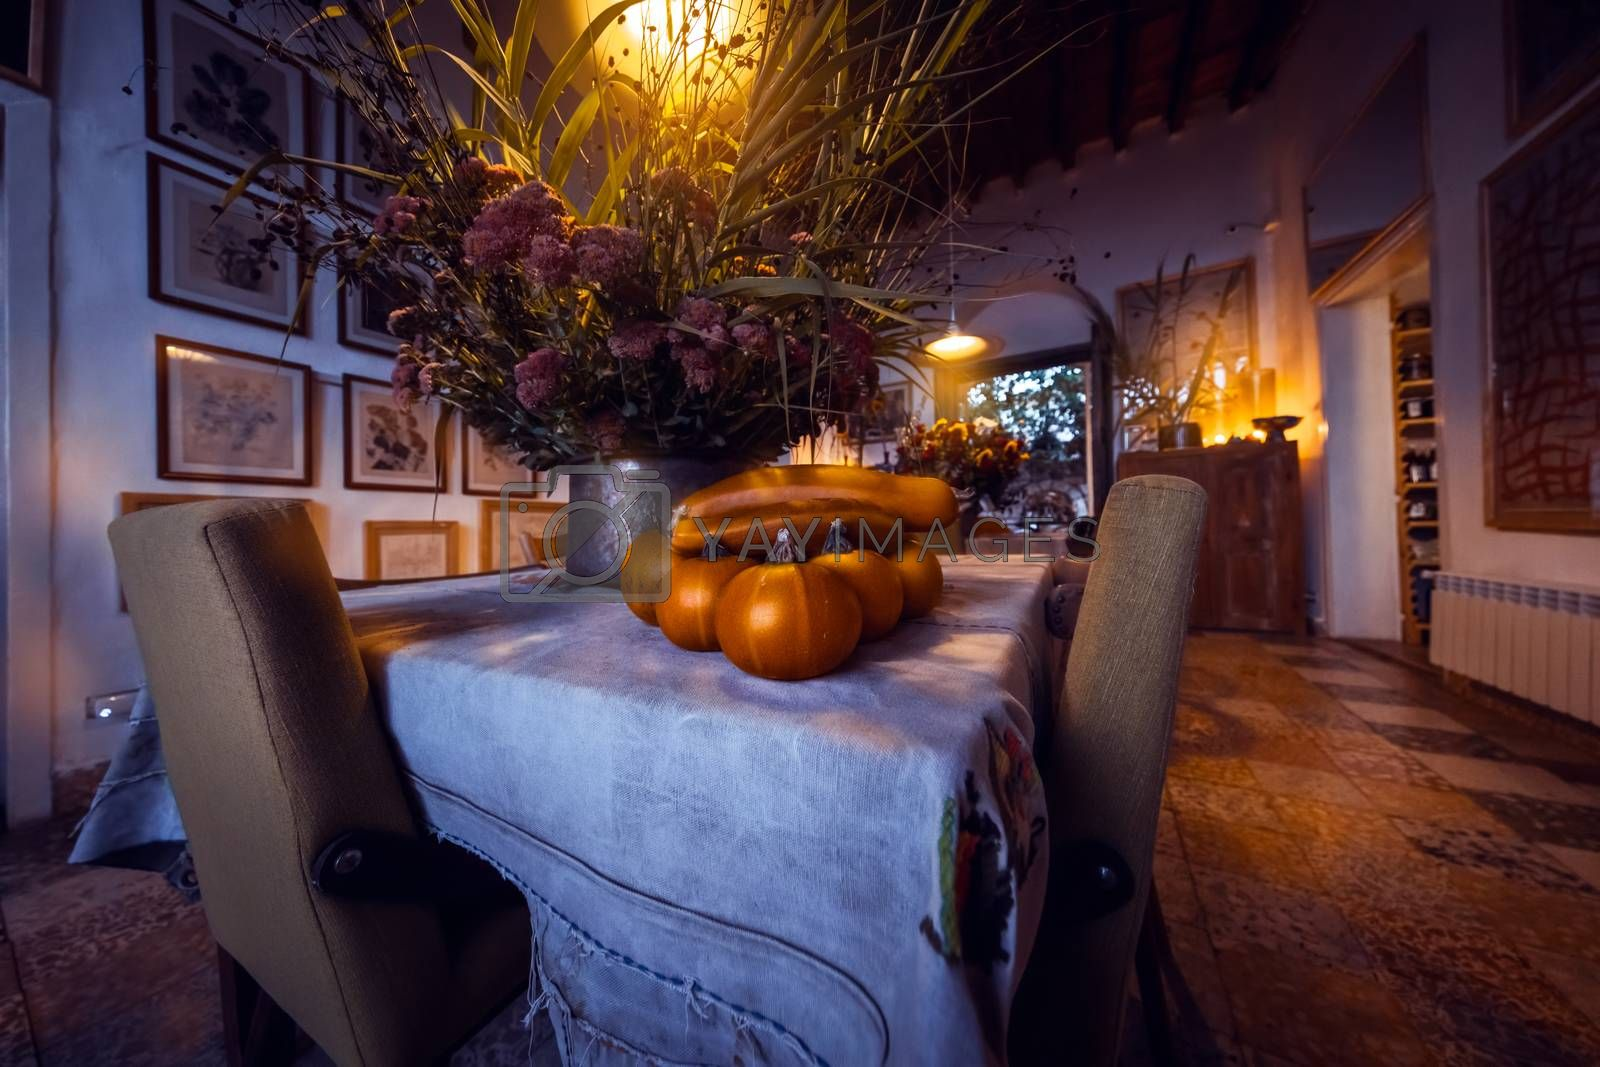 Thanksgiving Day in Family House. Festive Table with Pumpkins and Flowers Decoration. Traditional American Holiday. Autumn Harvest Celebration.